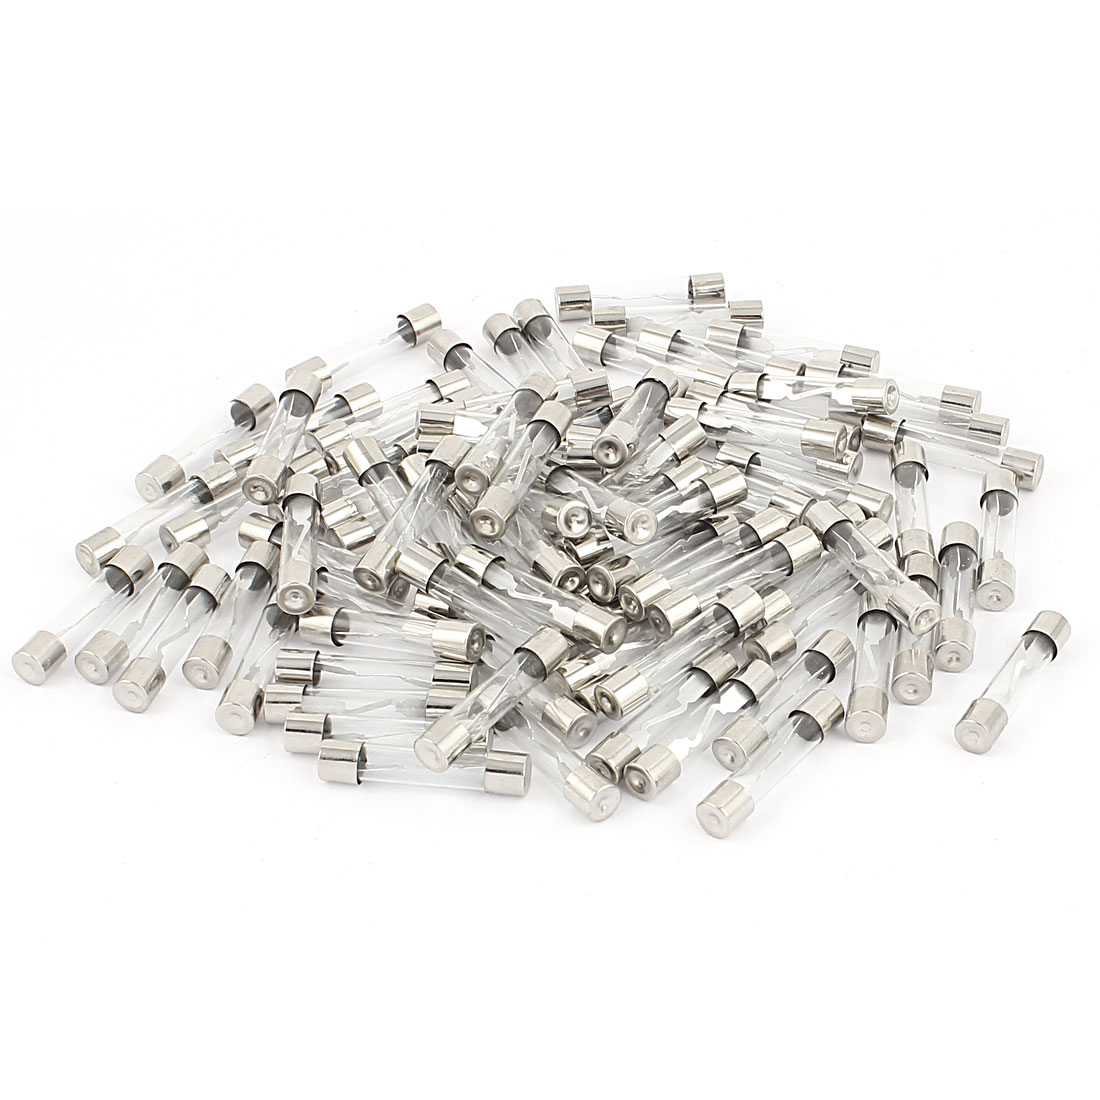 AC 250V 15-30A 6mmx30mm Quick Blow Fast Acting Low Breaking Capacity Cartridge Glass Tube Fuses 90pcs